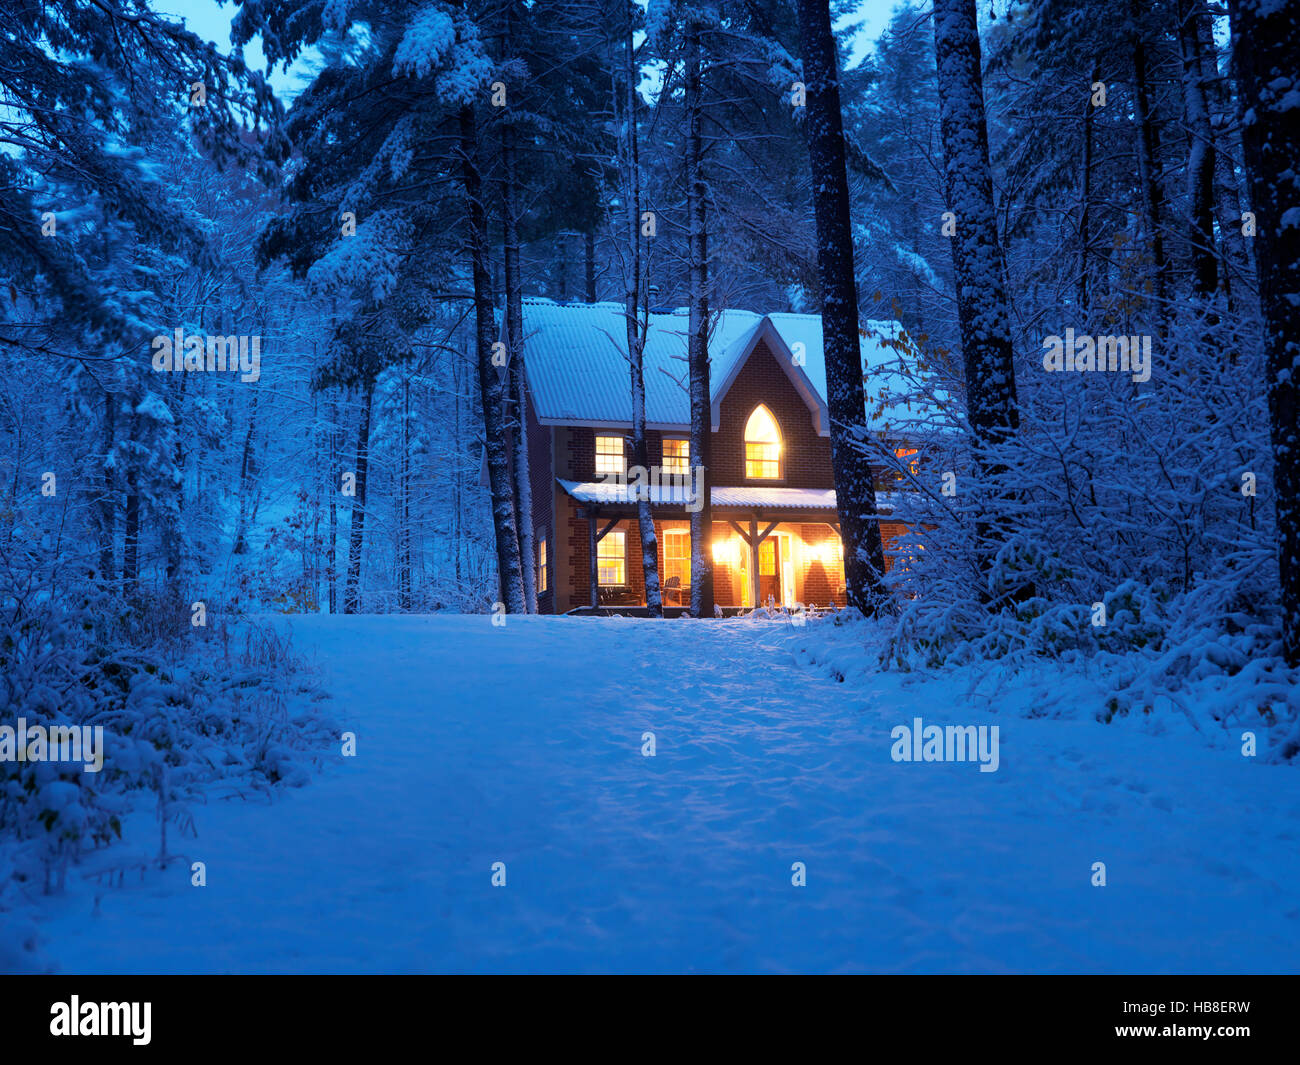 Brick country house or cottage with lights, snowy winter evening twilight, Muskoka, Ontario, Canada - Stock Image